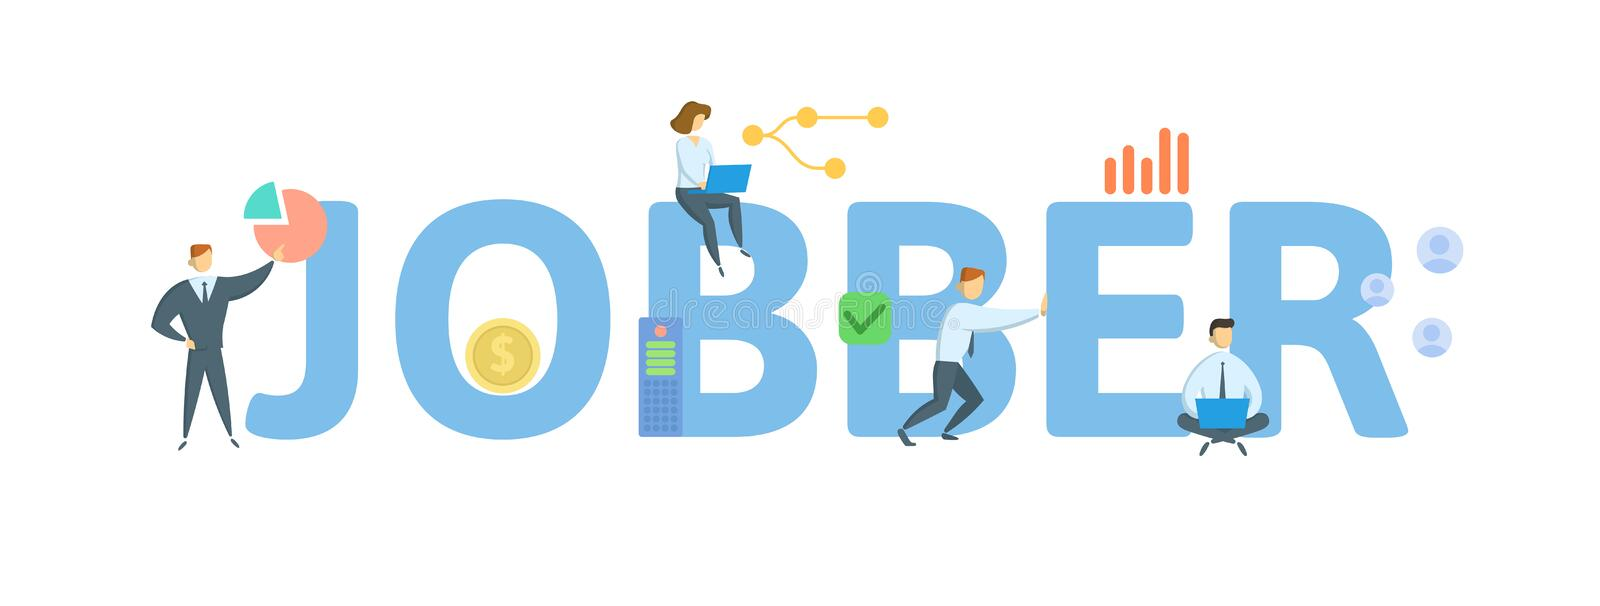 JOBBER. Concept with people, letters and icons. Flat vector illustration. Isolated on white background. royalty free illustration